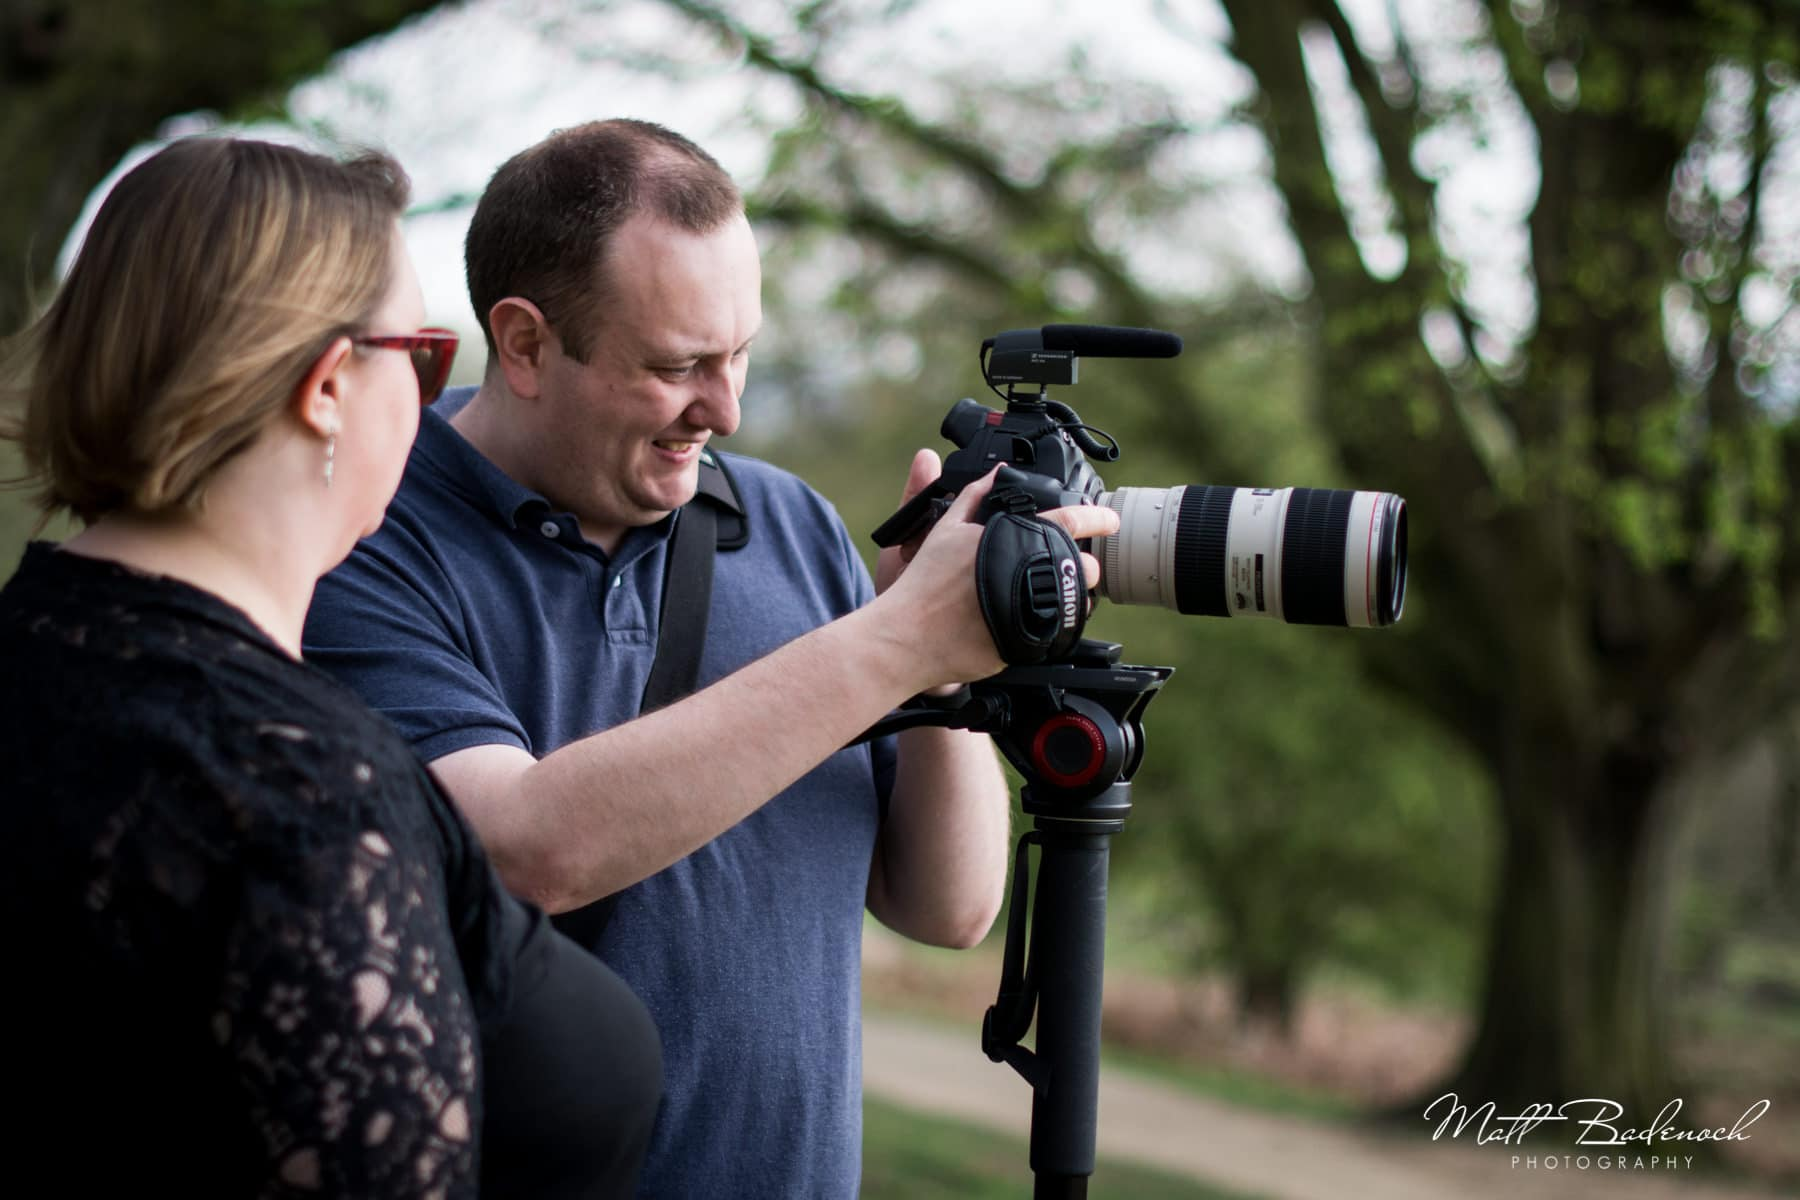 Julie & Danny, Minty Slippers London Wedding Videographer | Matt Badenoch Photography